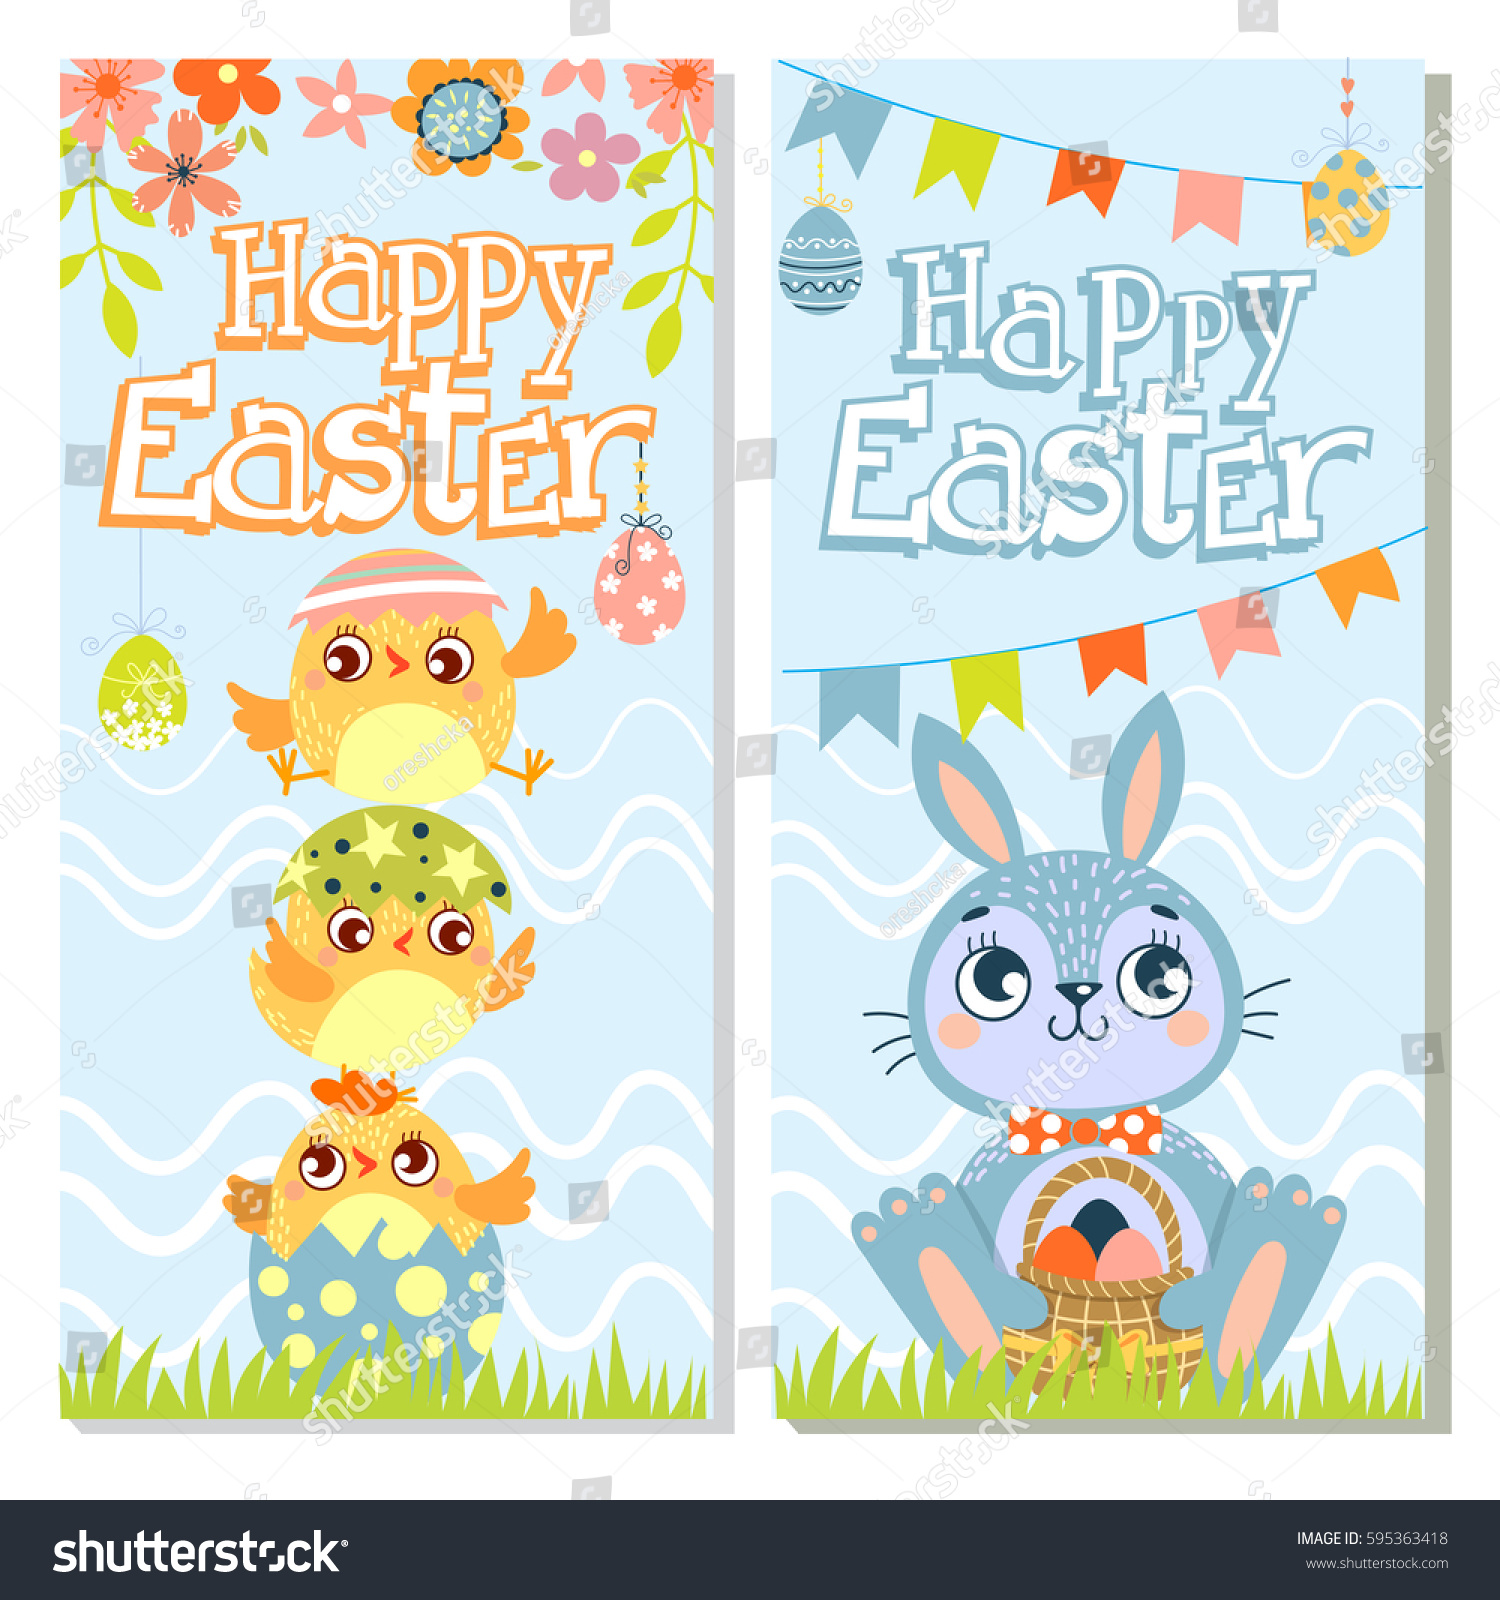 Set Of Happy Easter Greeting Cards Rabbitchicken And Eggs Vector